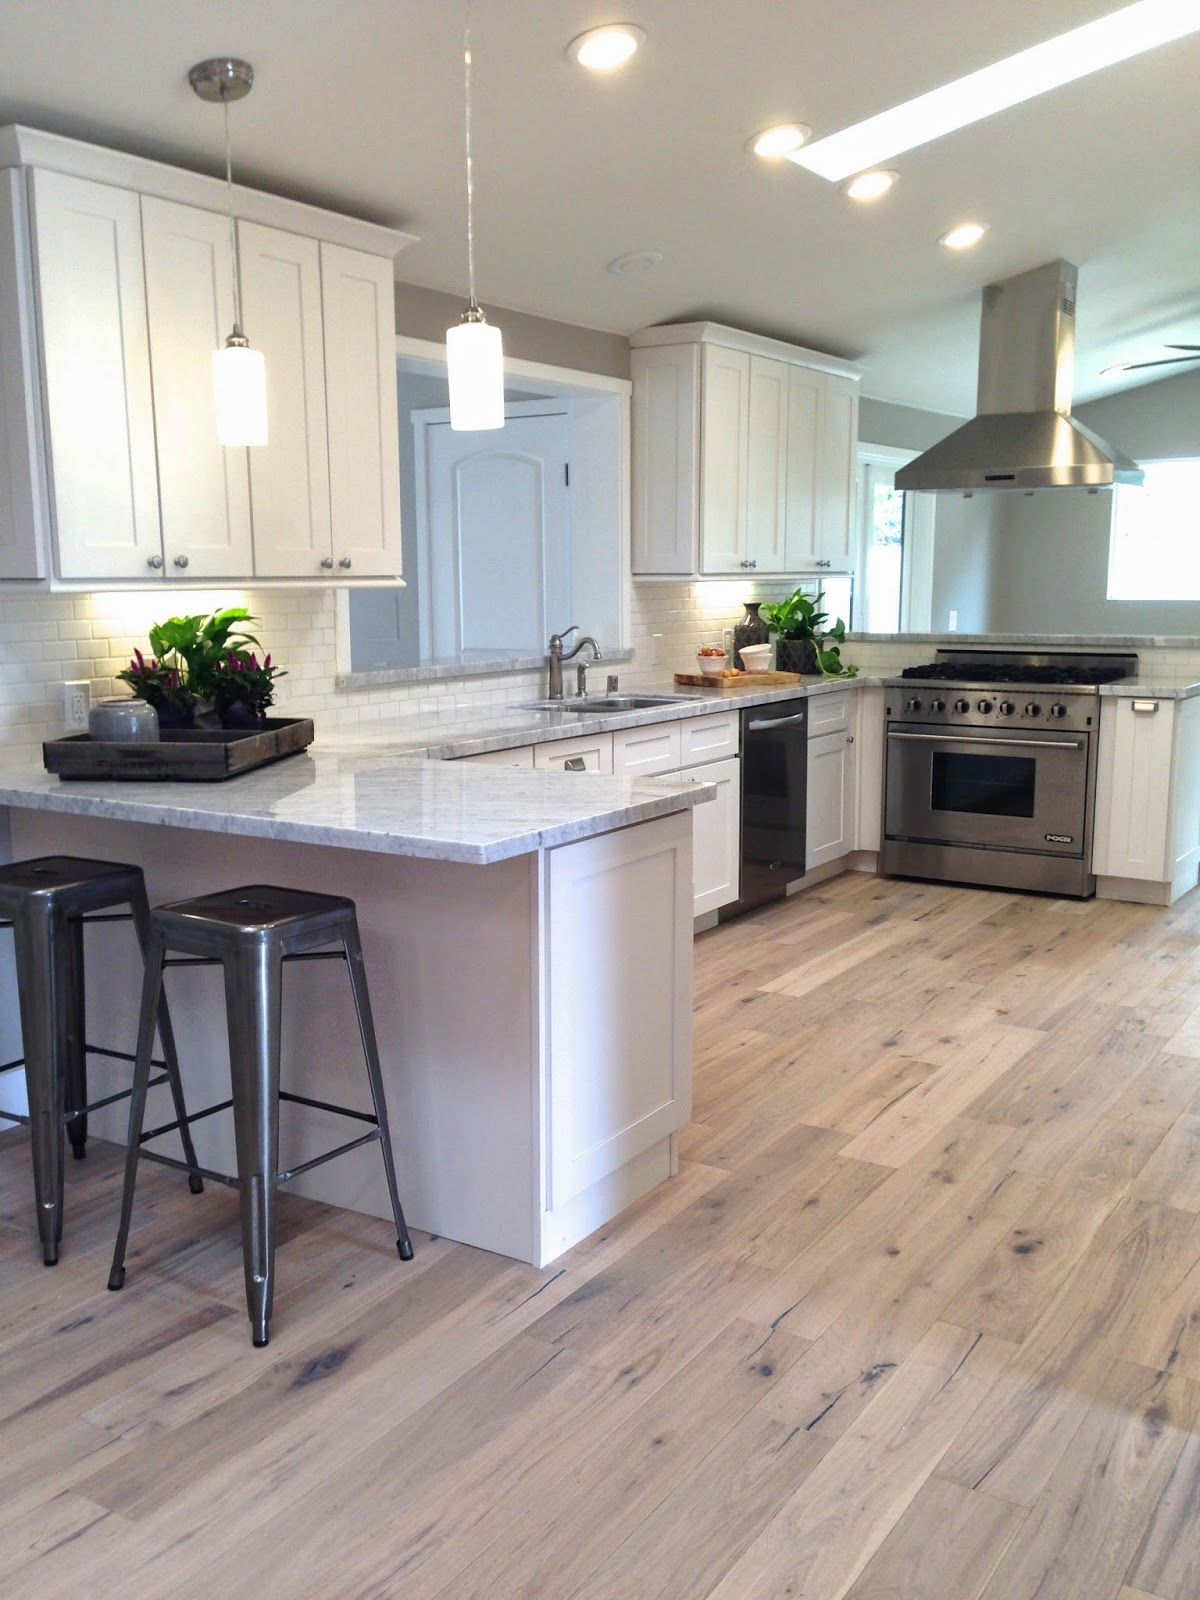 Delightful Best Of 2014: Rossmoor House Finished. Best Flooring For KitchenBest Kitchen  LayoutRustic Hardwood ...